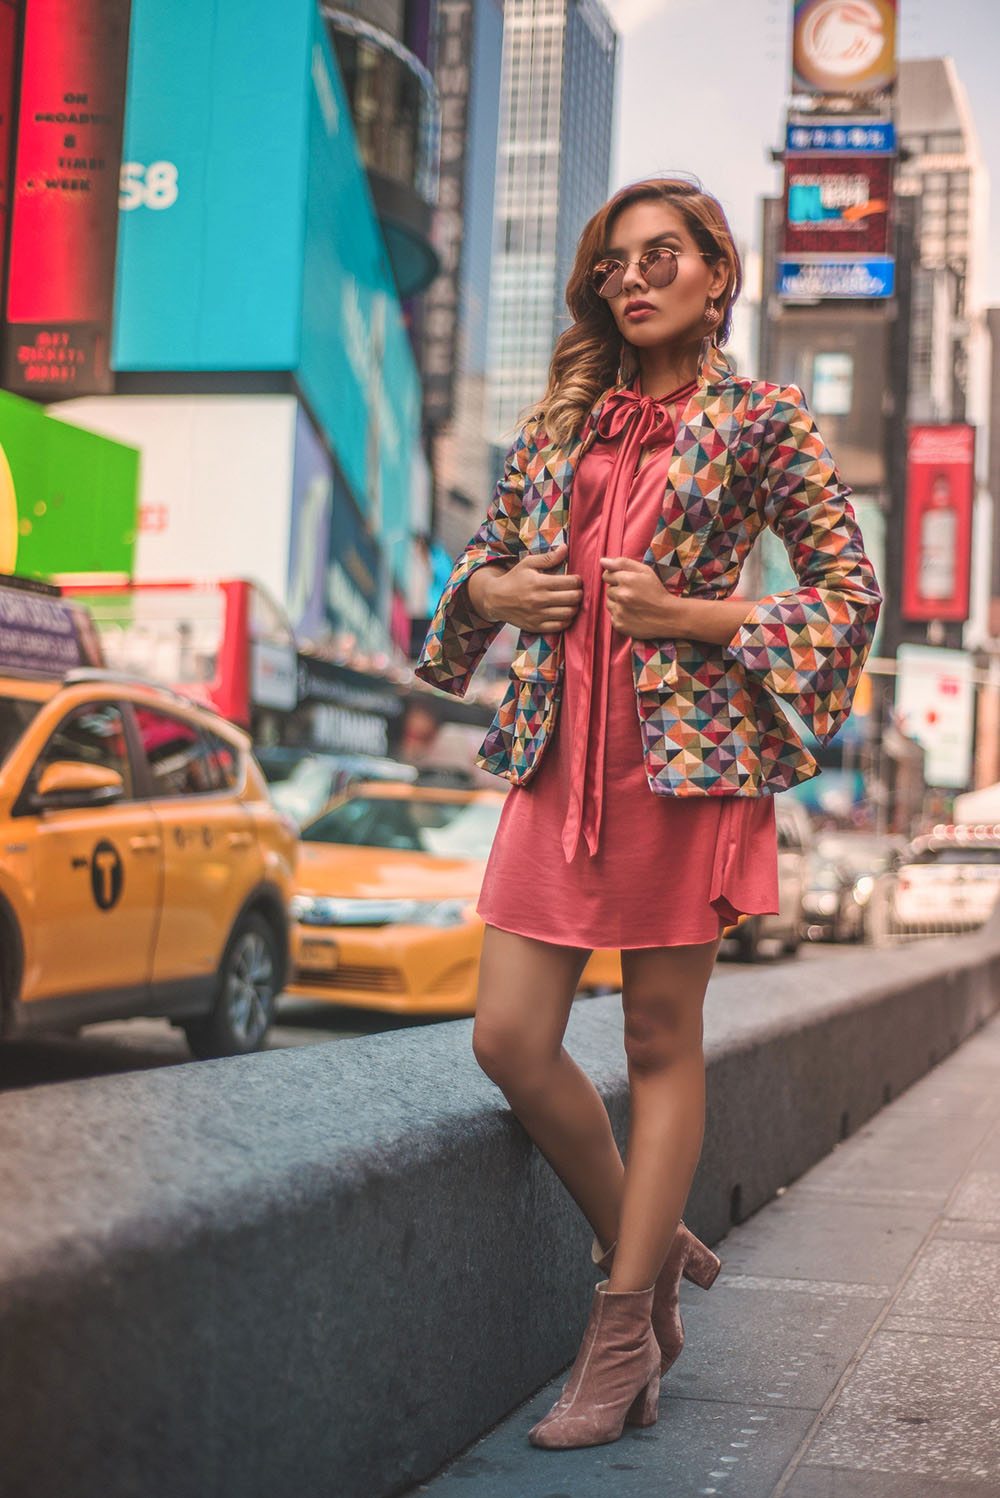 Time Square Fashion Blogger New York  @caroseditorial